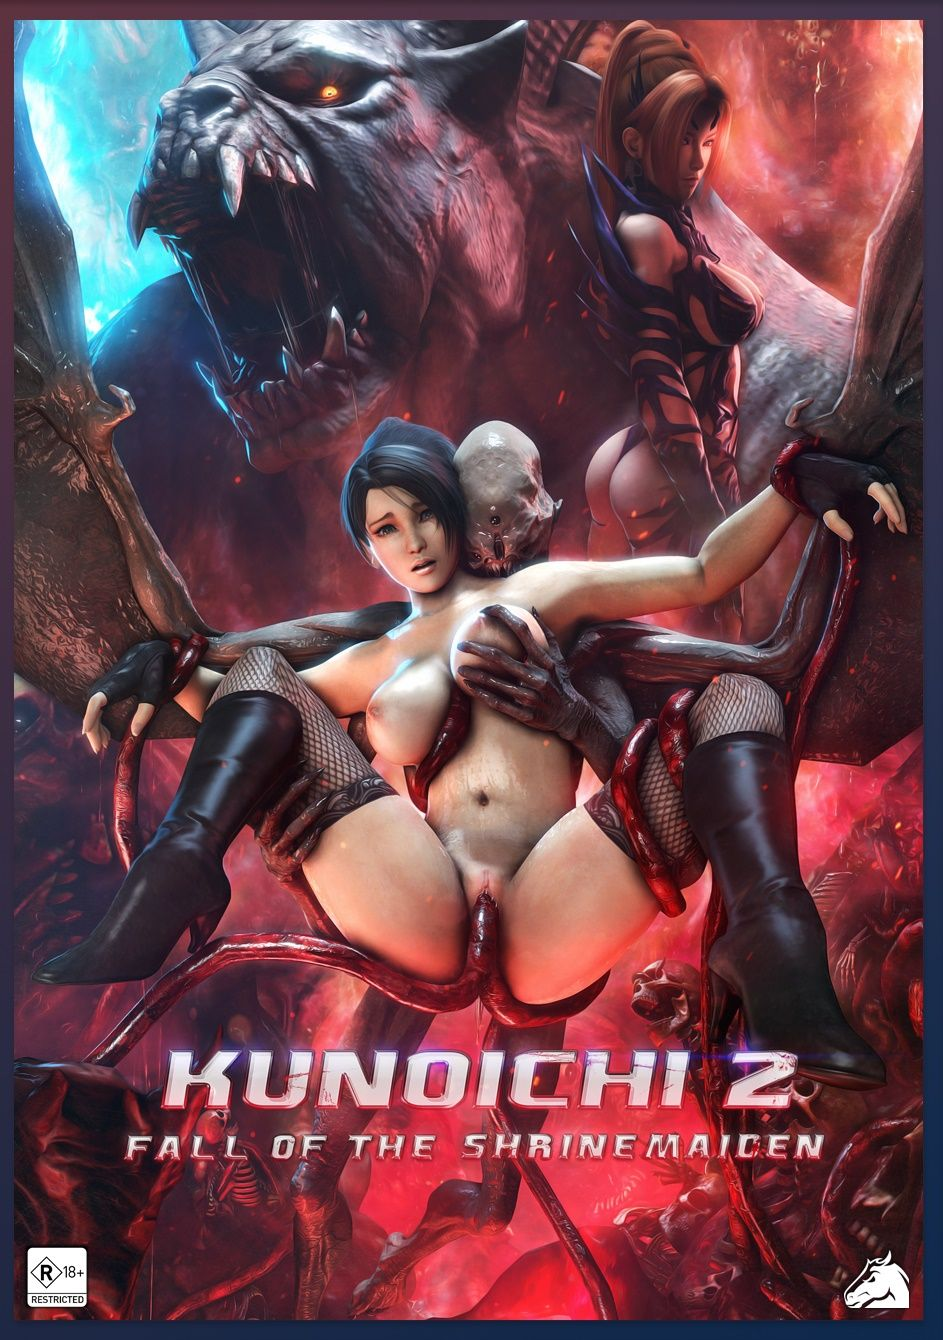 [FOW-005] Kunoichi 2: Fall of the Shrinemaiden |